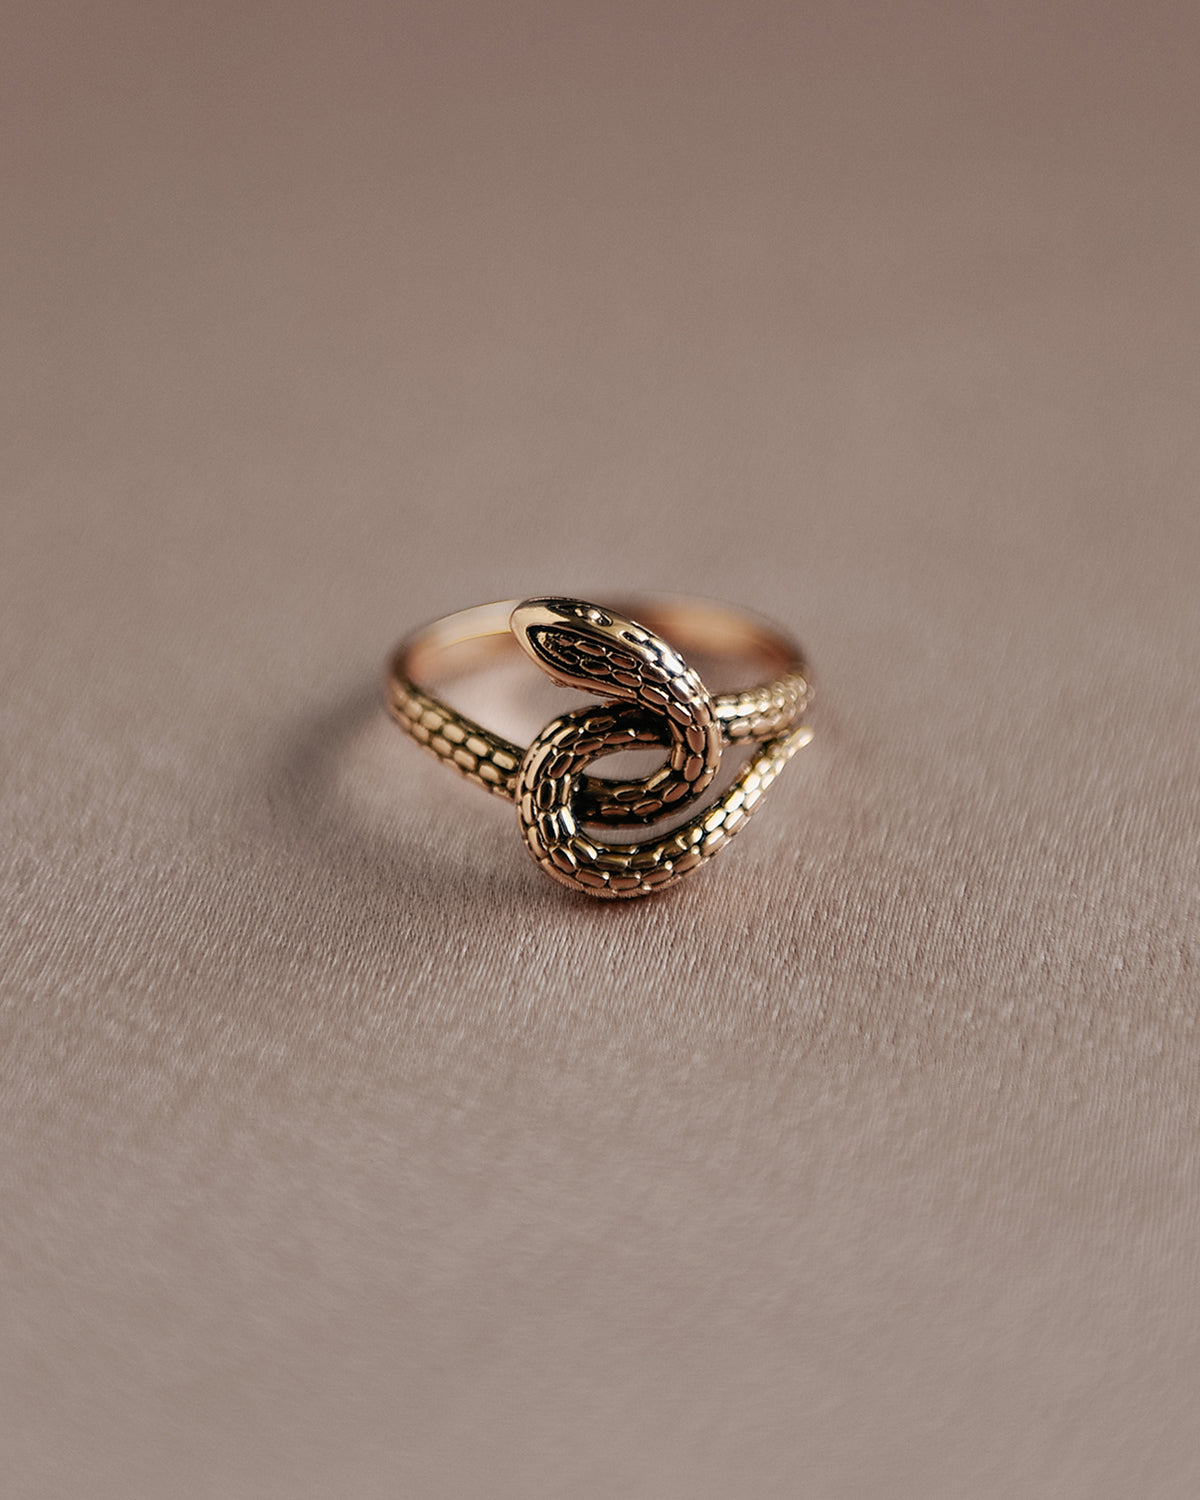 Sunday Sterling Silver Snake Ring - Gold Plated